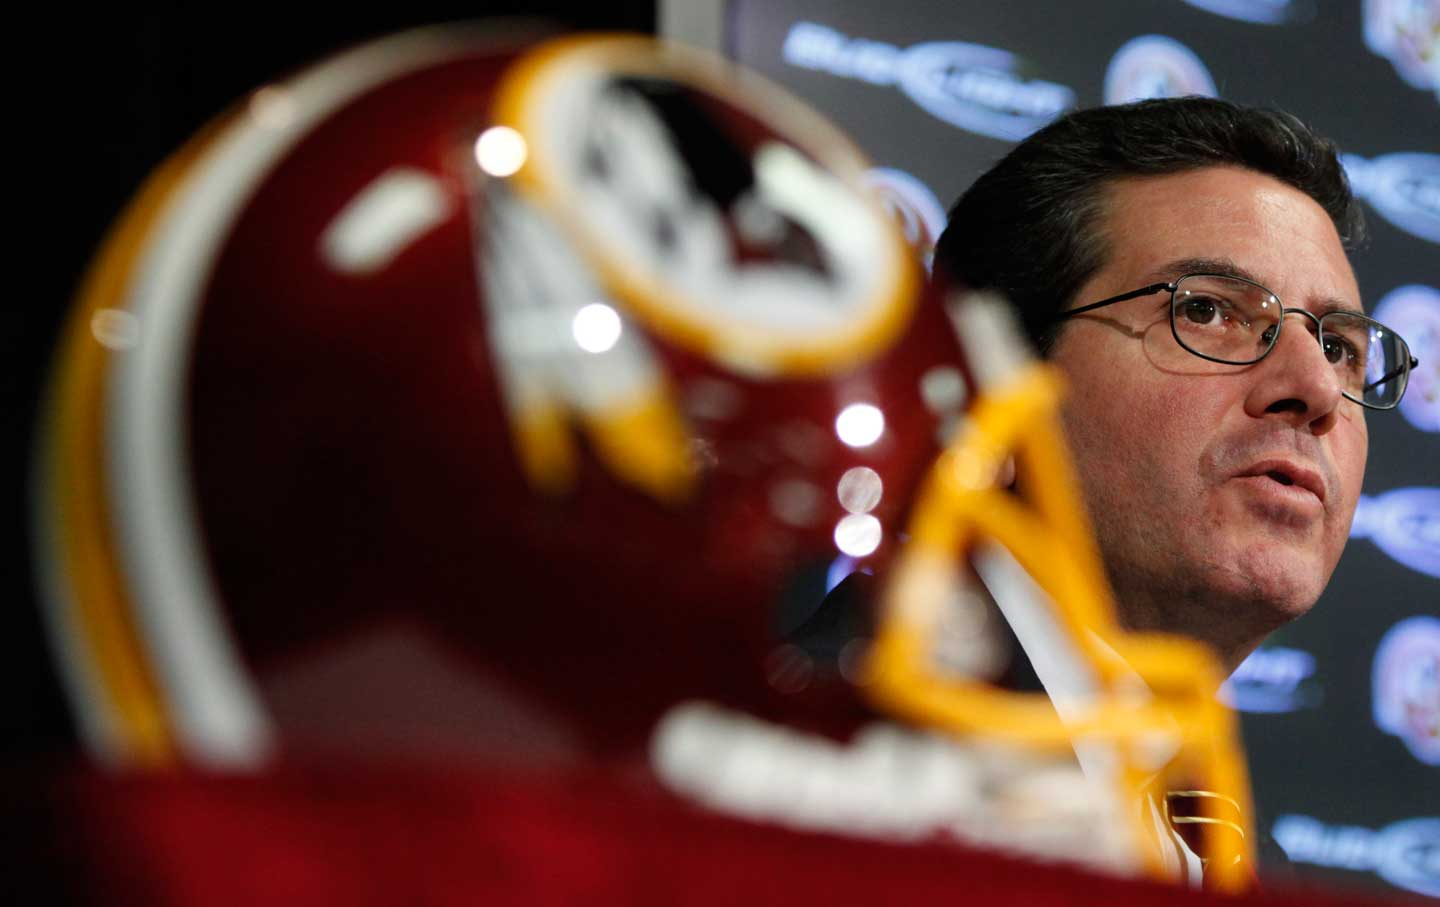 Washington football team owner Dan Snyder